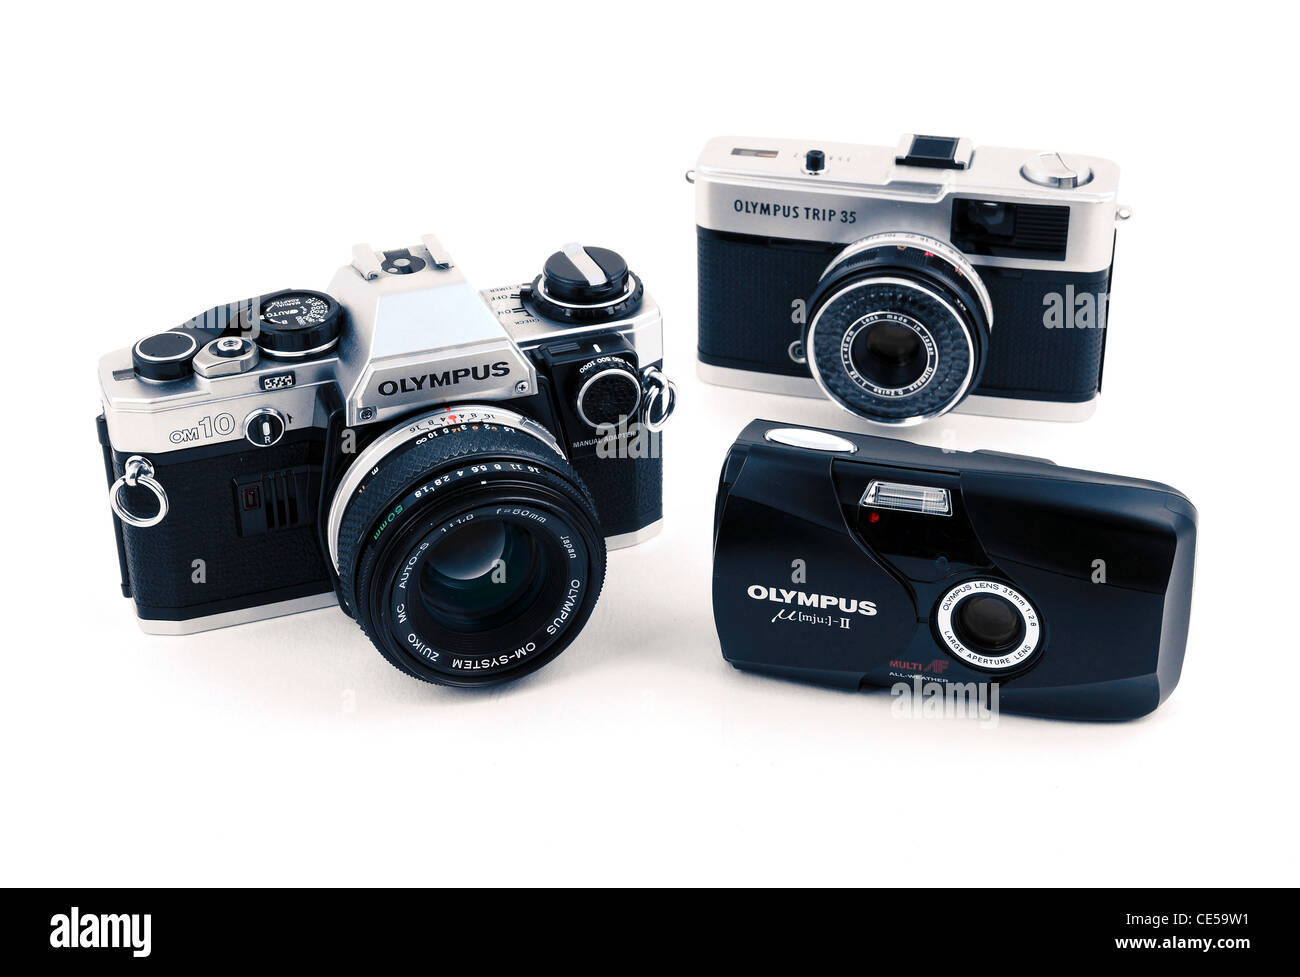 A collection of old Olympus 35mm film cameras - Stock Image